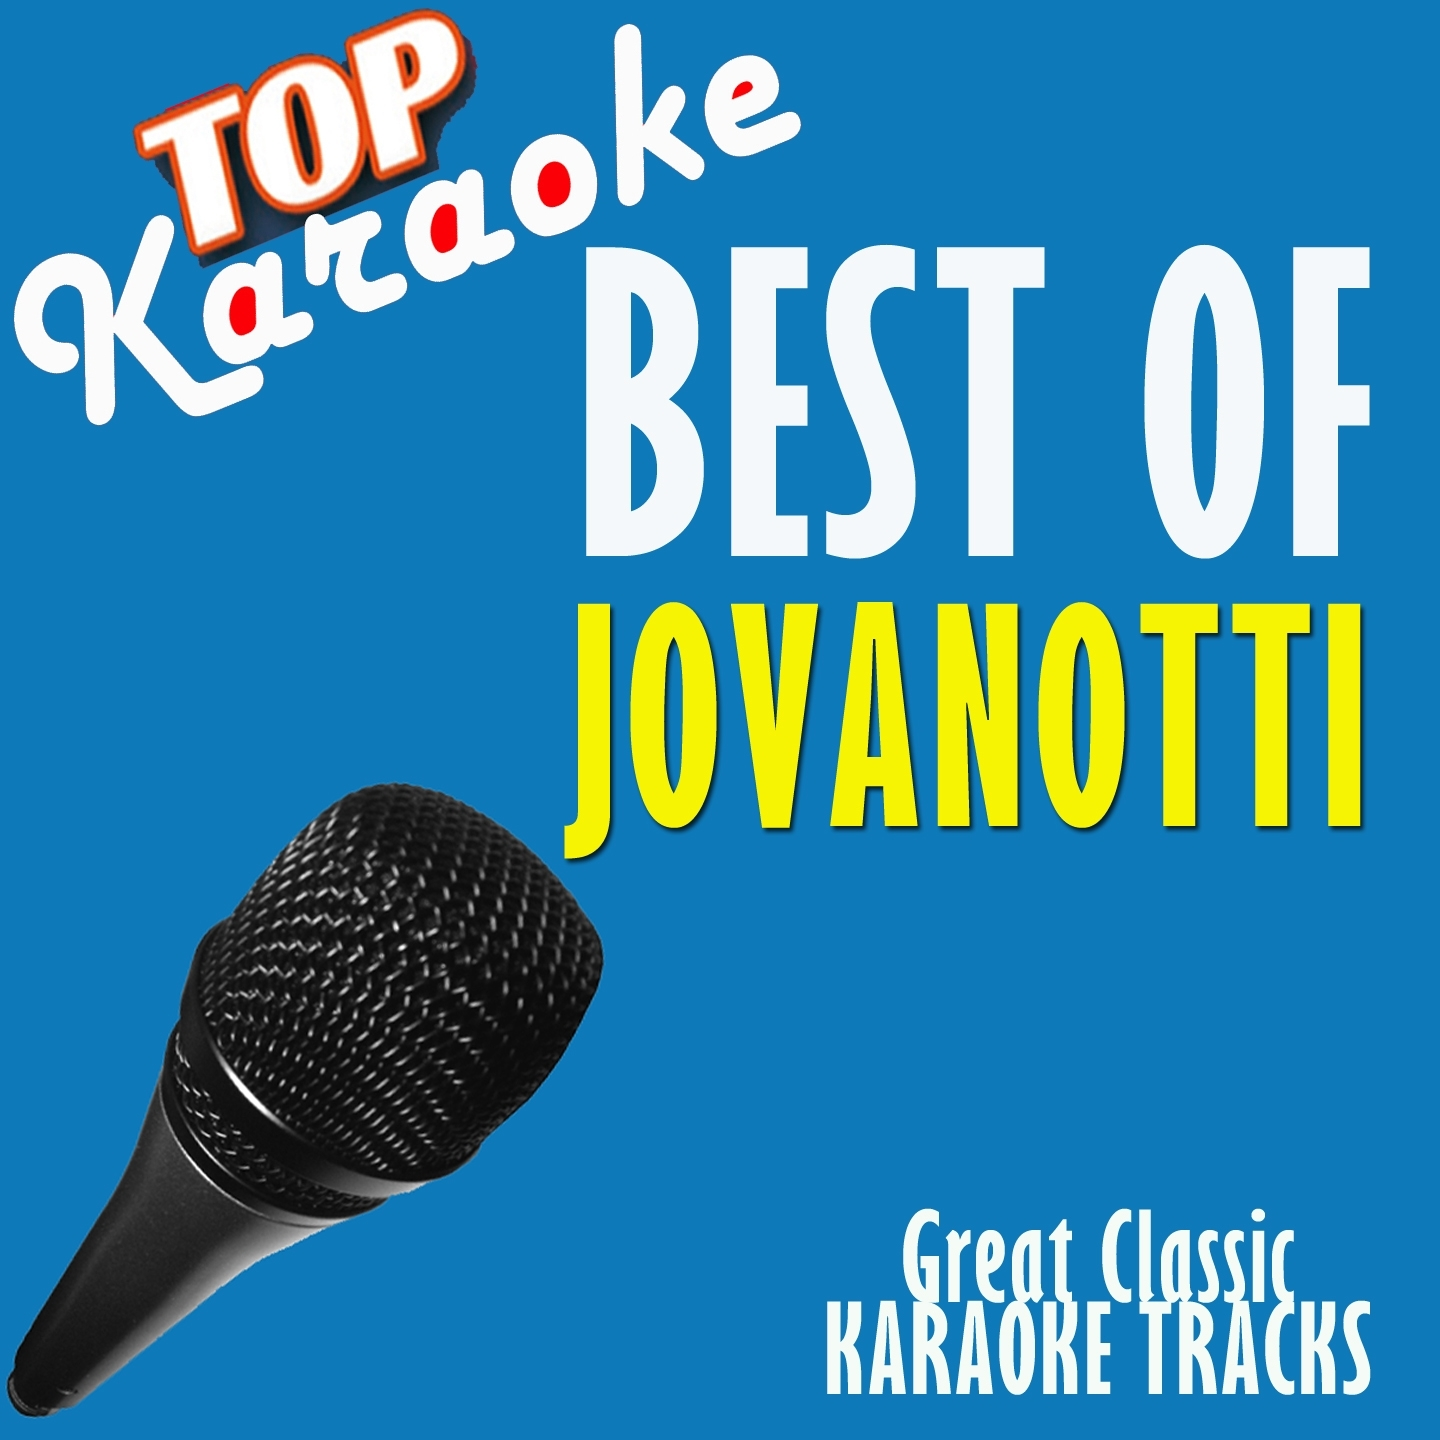 Best of Jovanotti